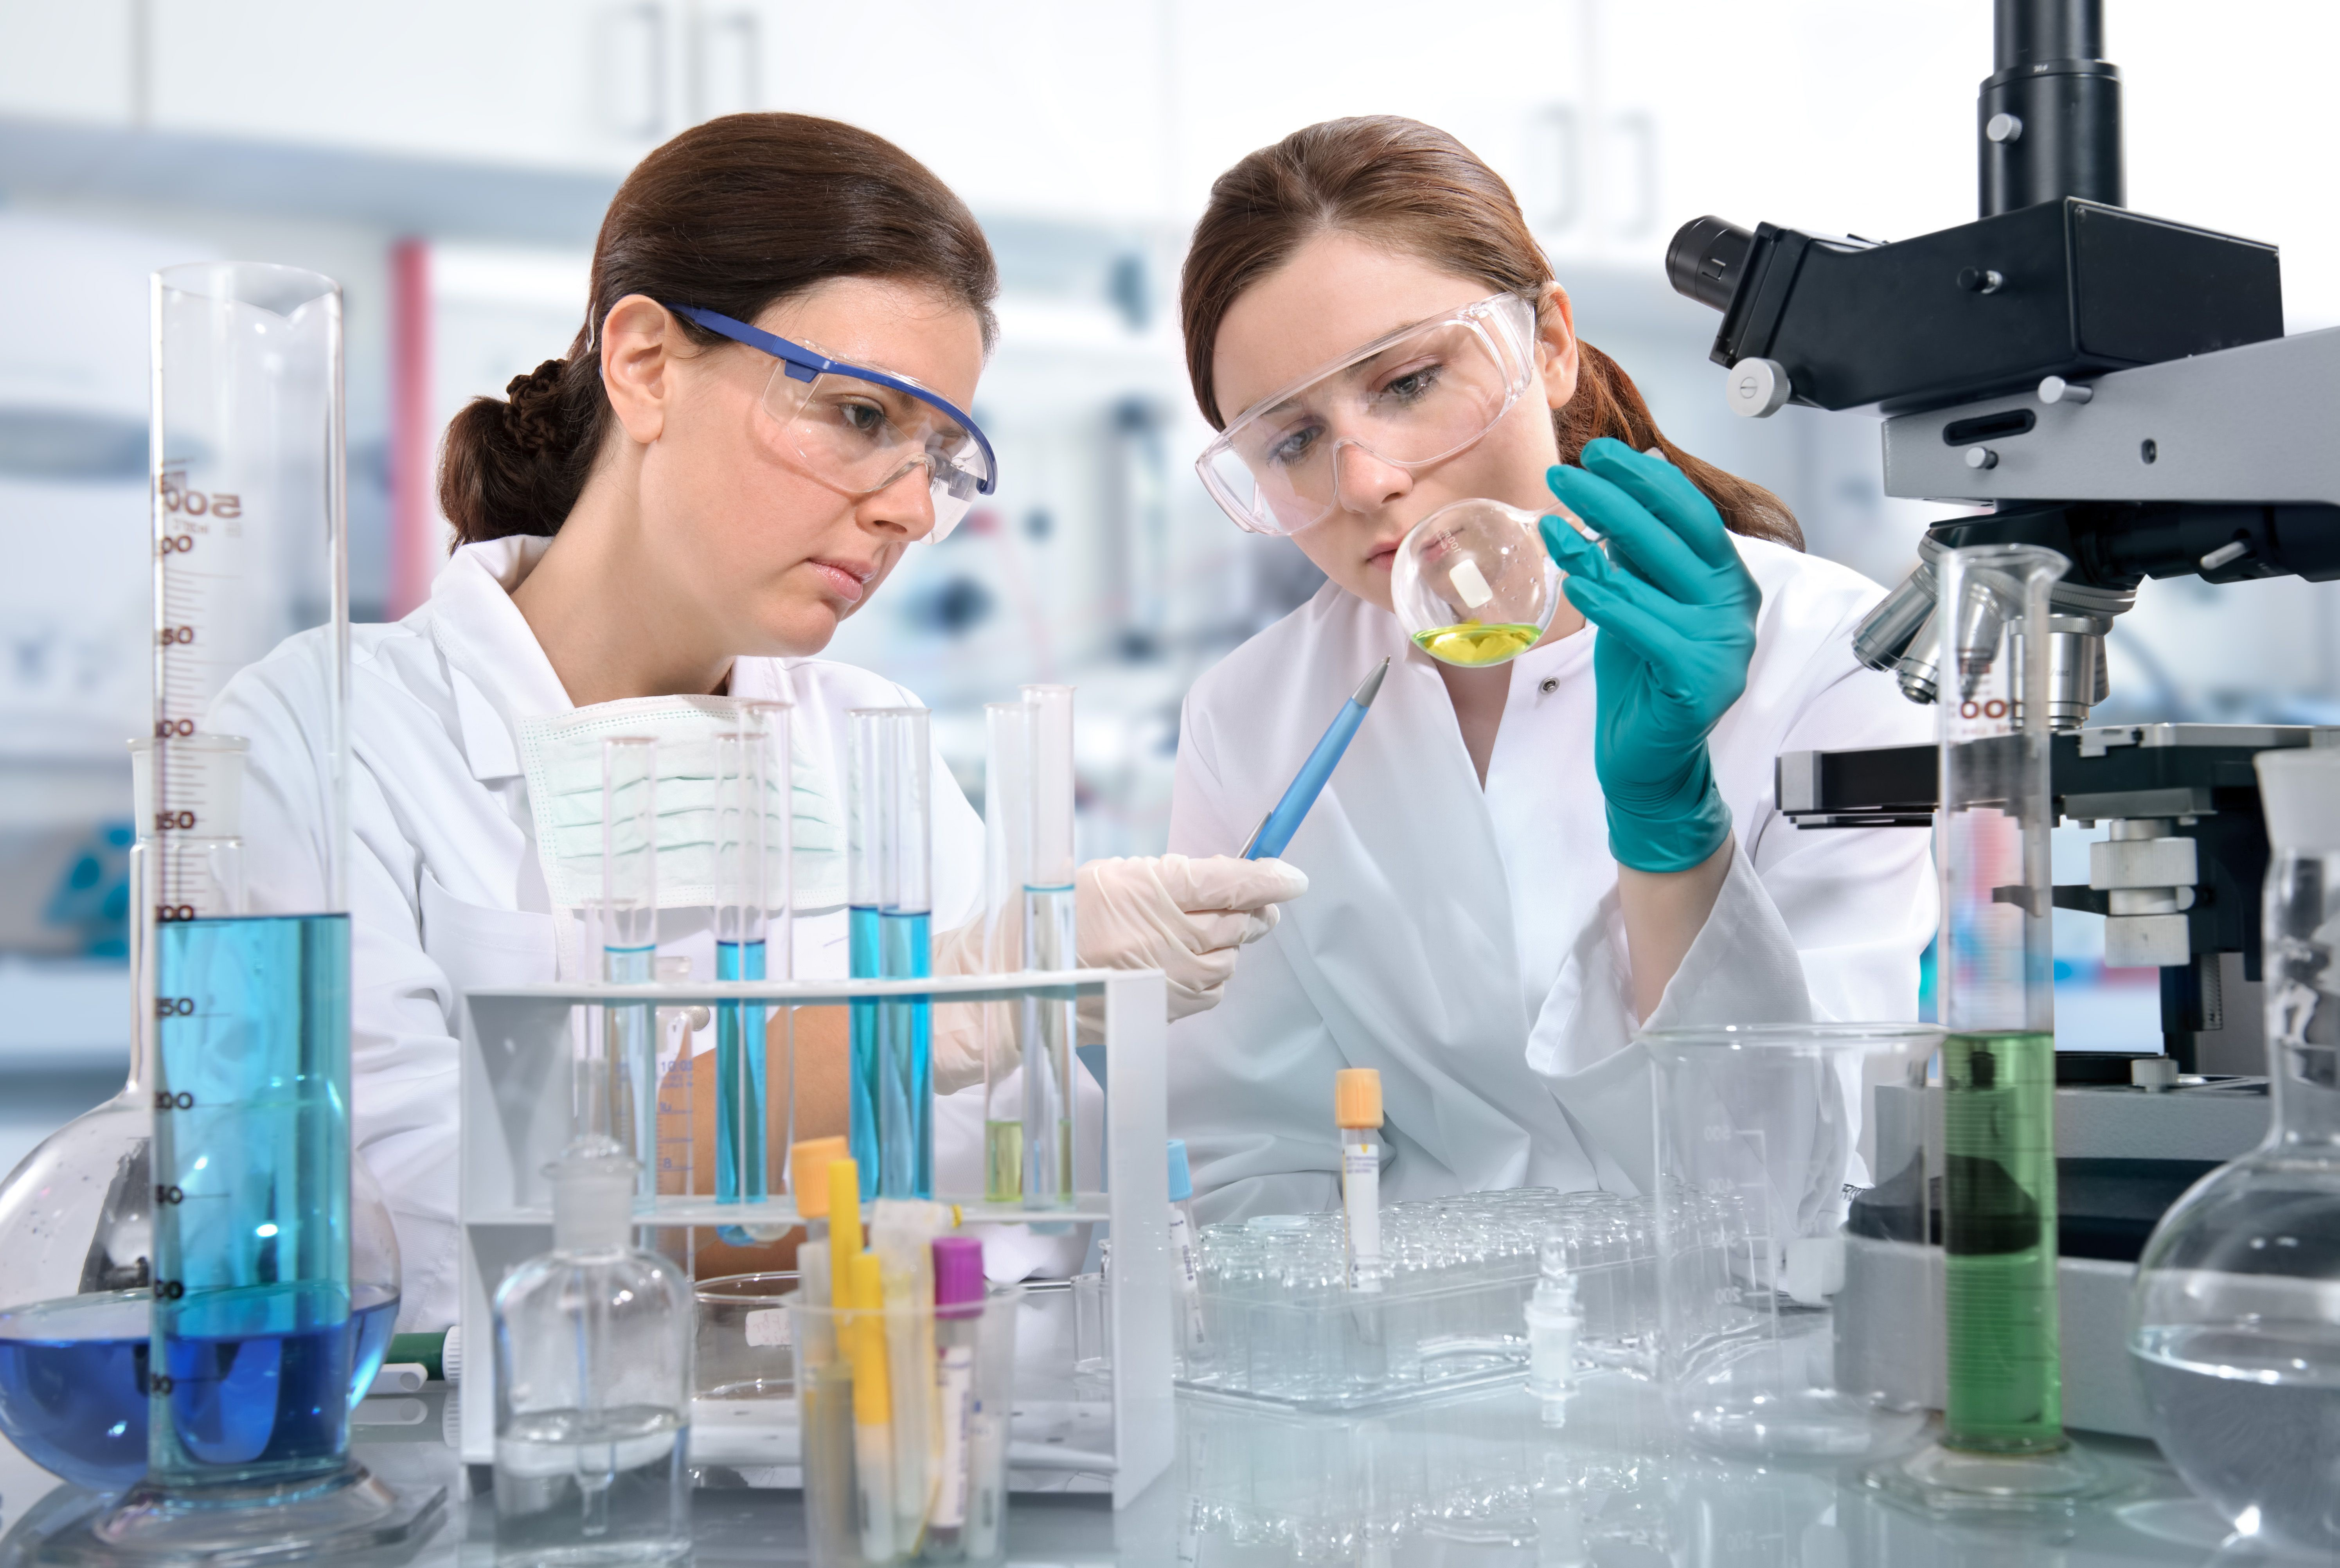 females_in_lab_with_chemicals_2.jpg